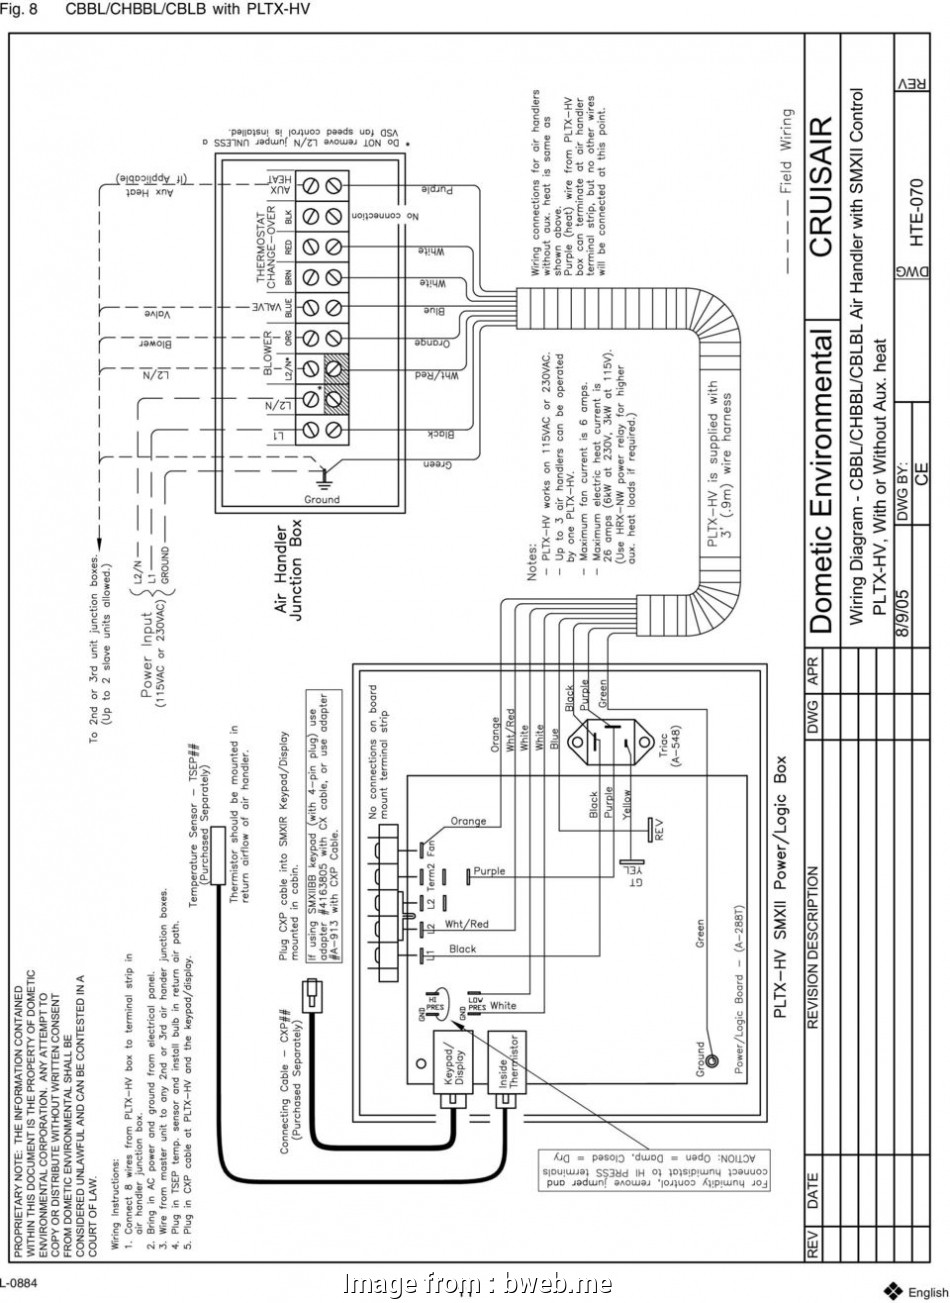 Schematic Coleman Mach Thermostat Wiring Diagram from tonetastic.info